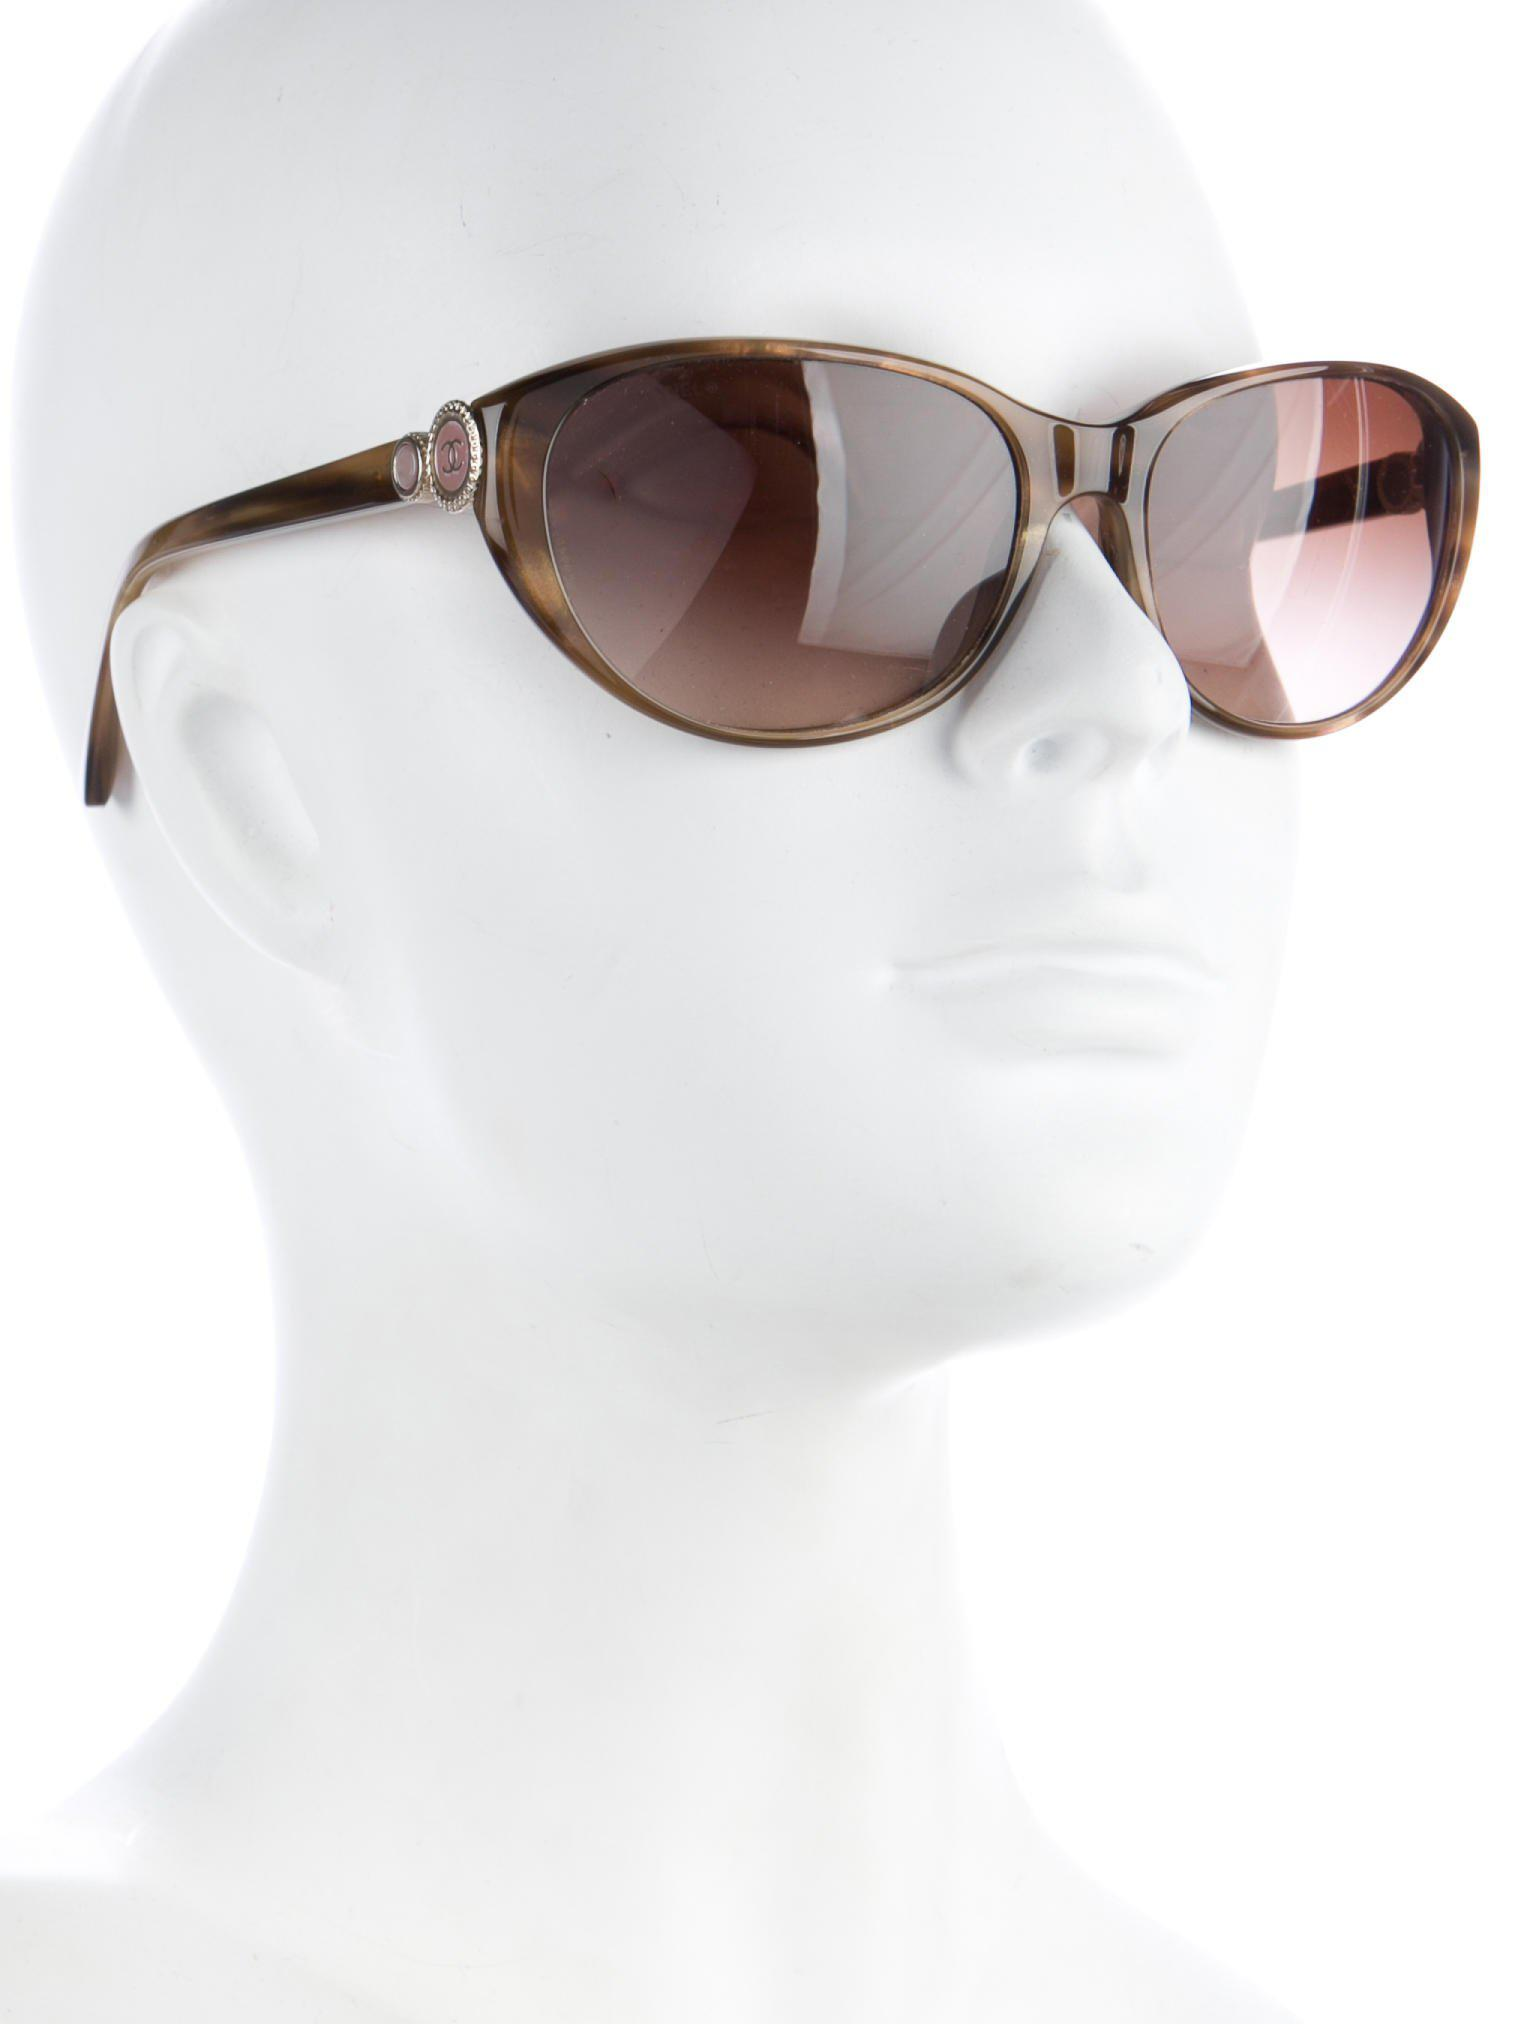 241a6c9f04a0 Lyst - Chanel Bouton Collection Cc Sunglasses Olive in Metallic